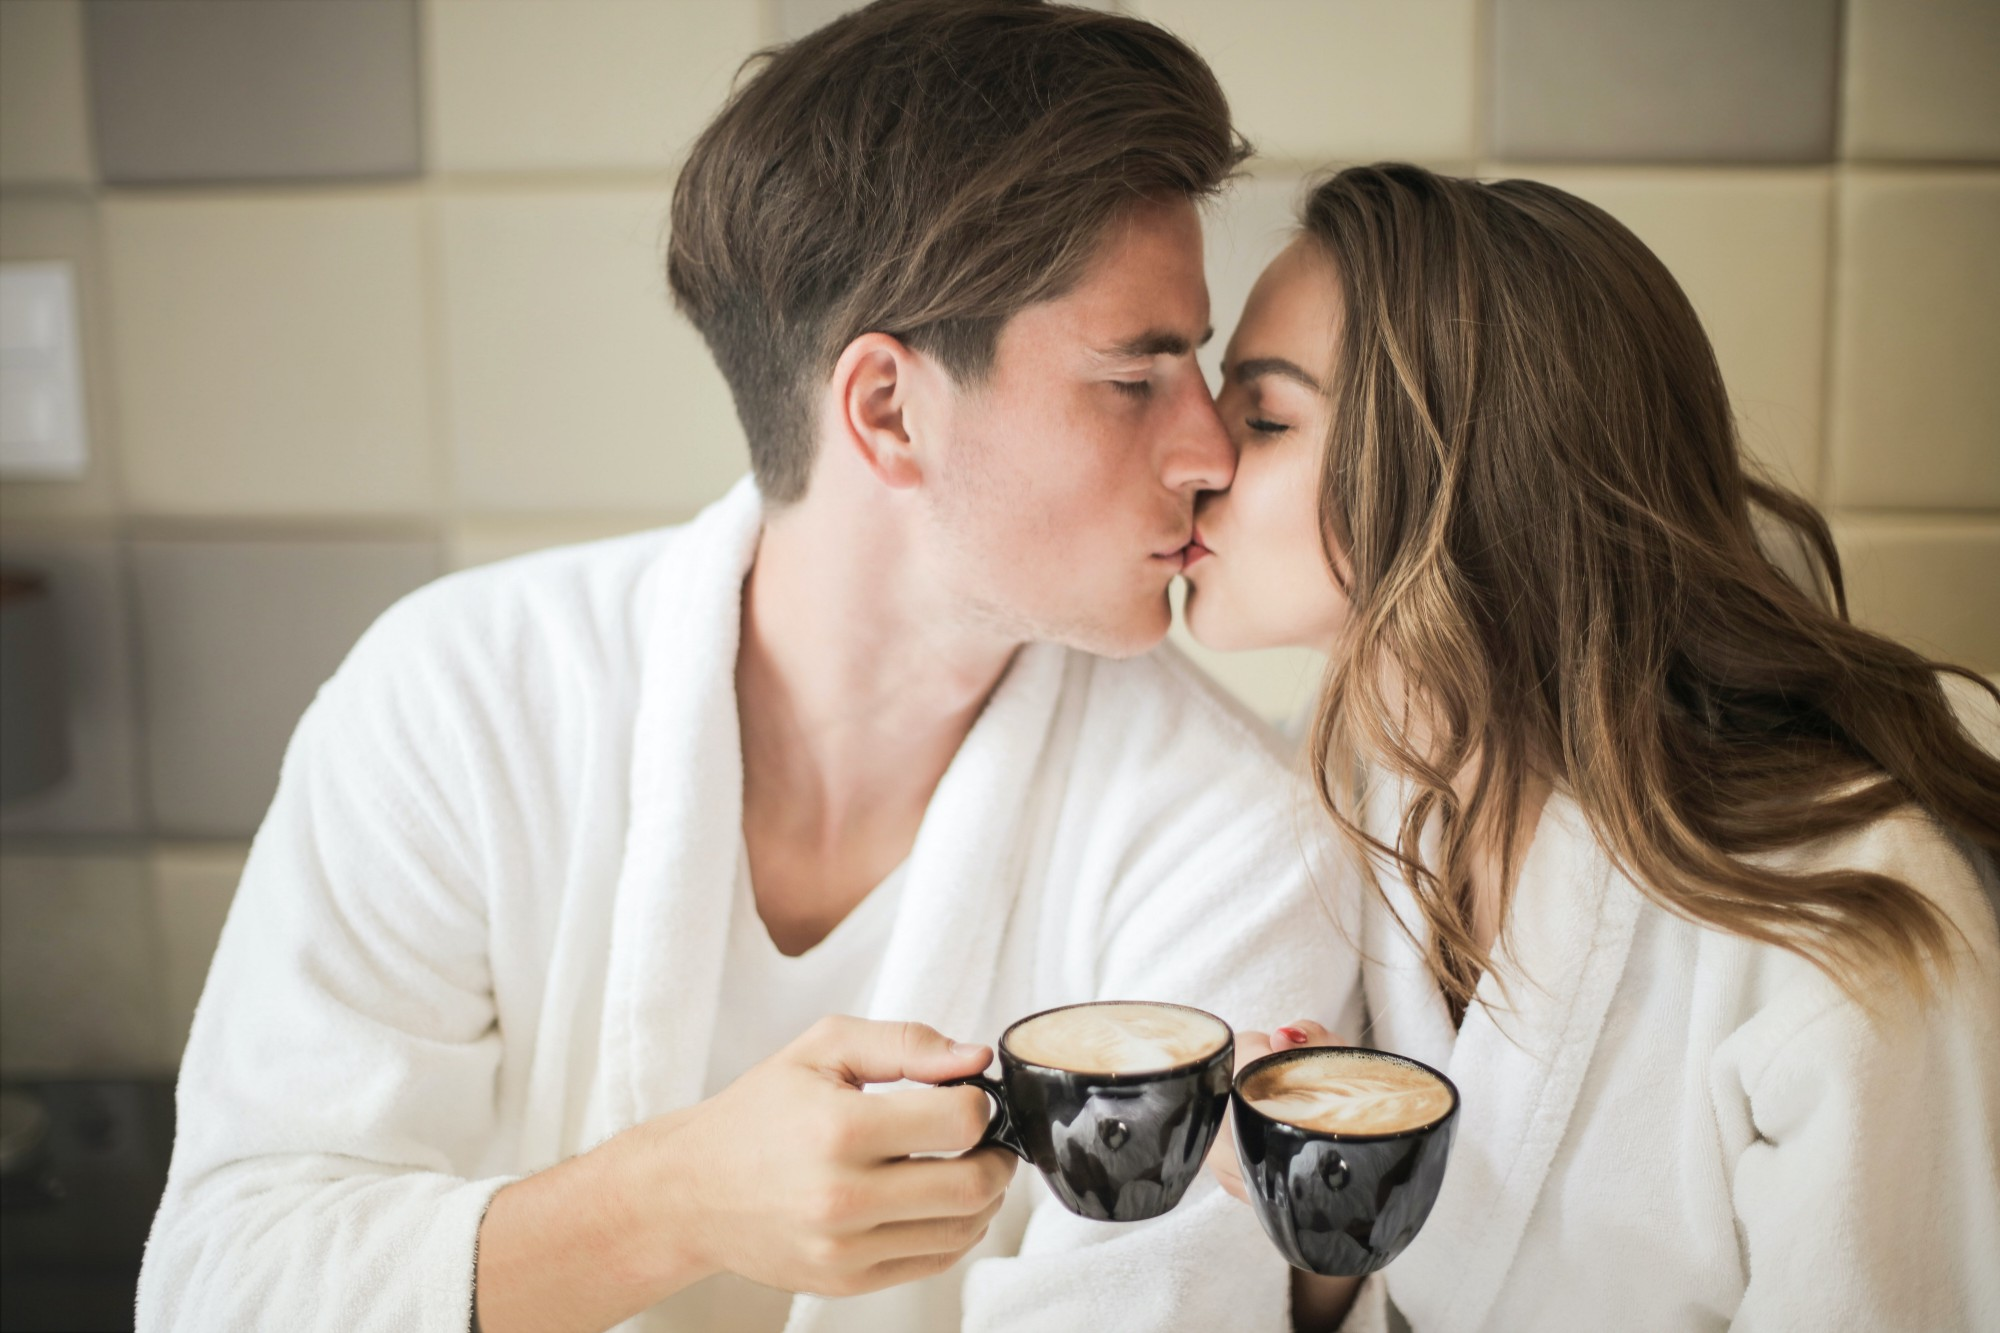 5 Little Things Stable Couples Do for Each Other Every Day